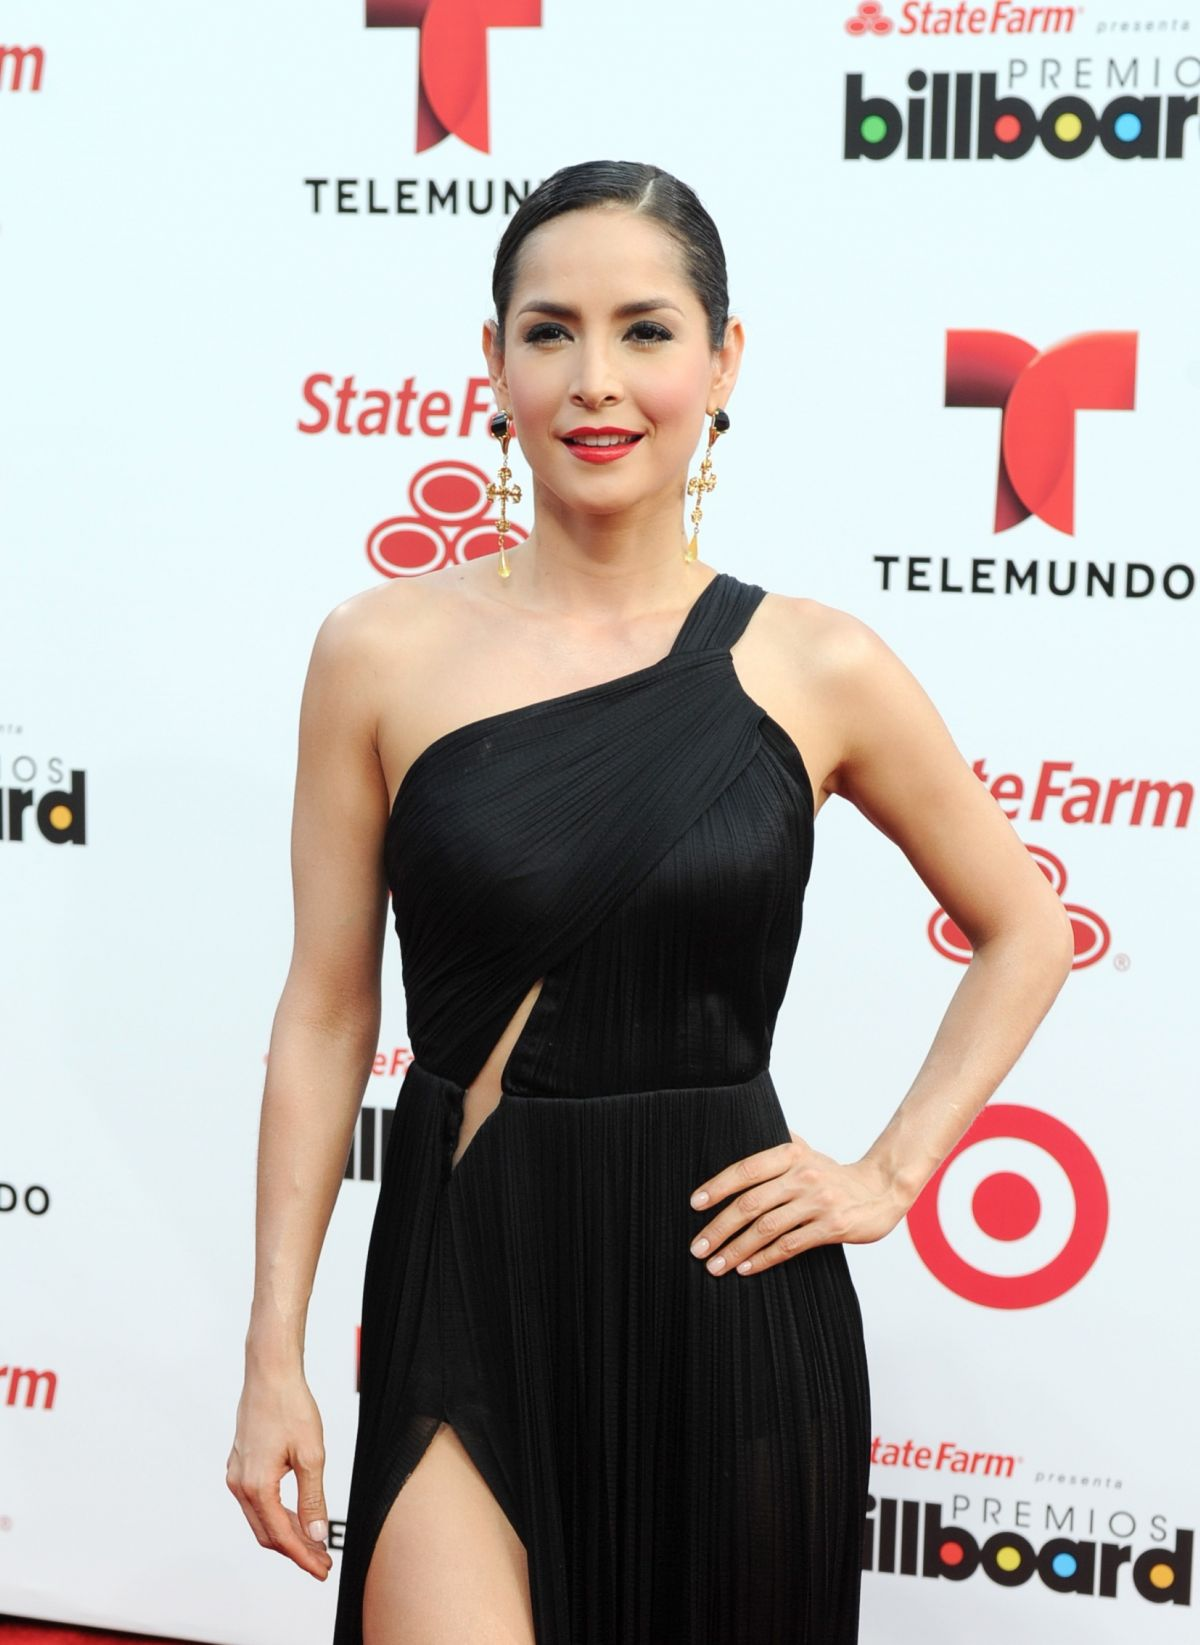 CARMEN VILLALOBOS at 2014 Billboard Latin Music Awards in Miami